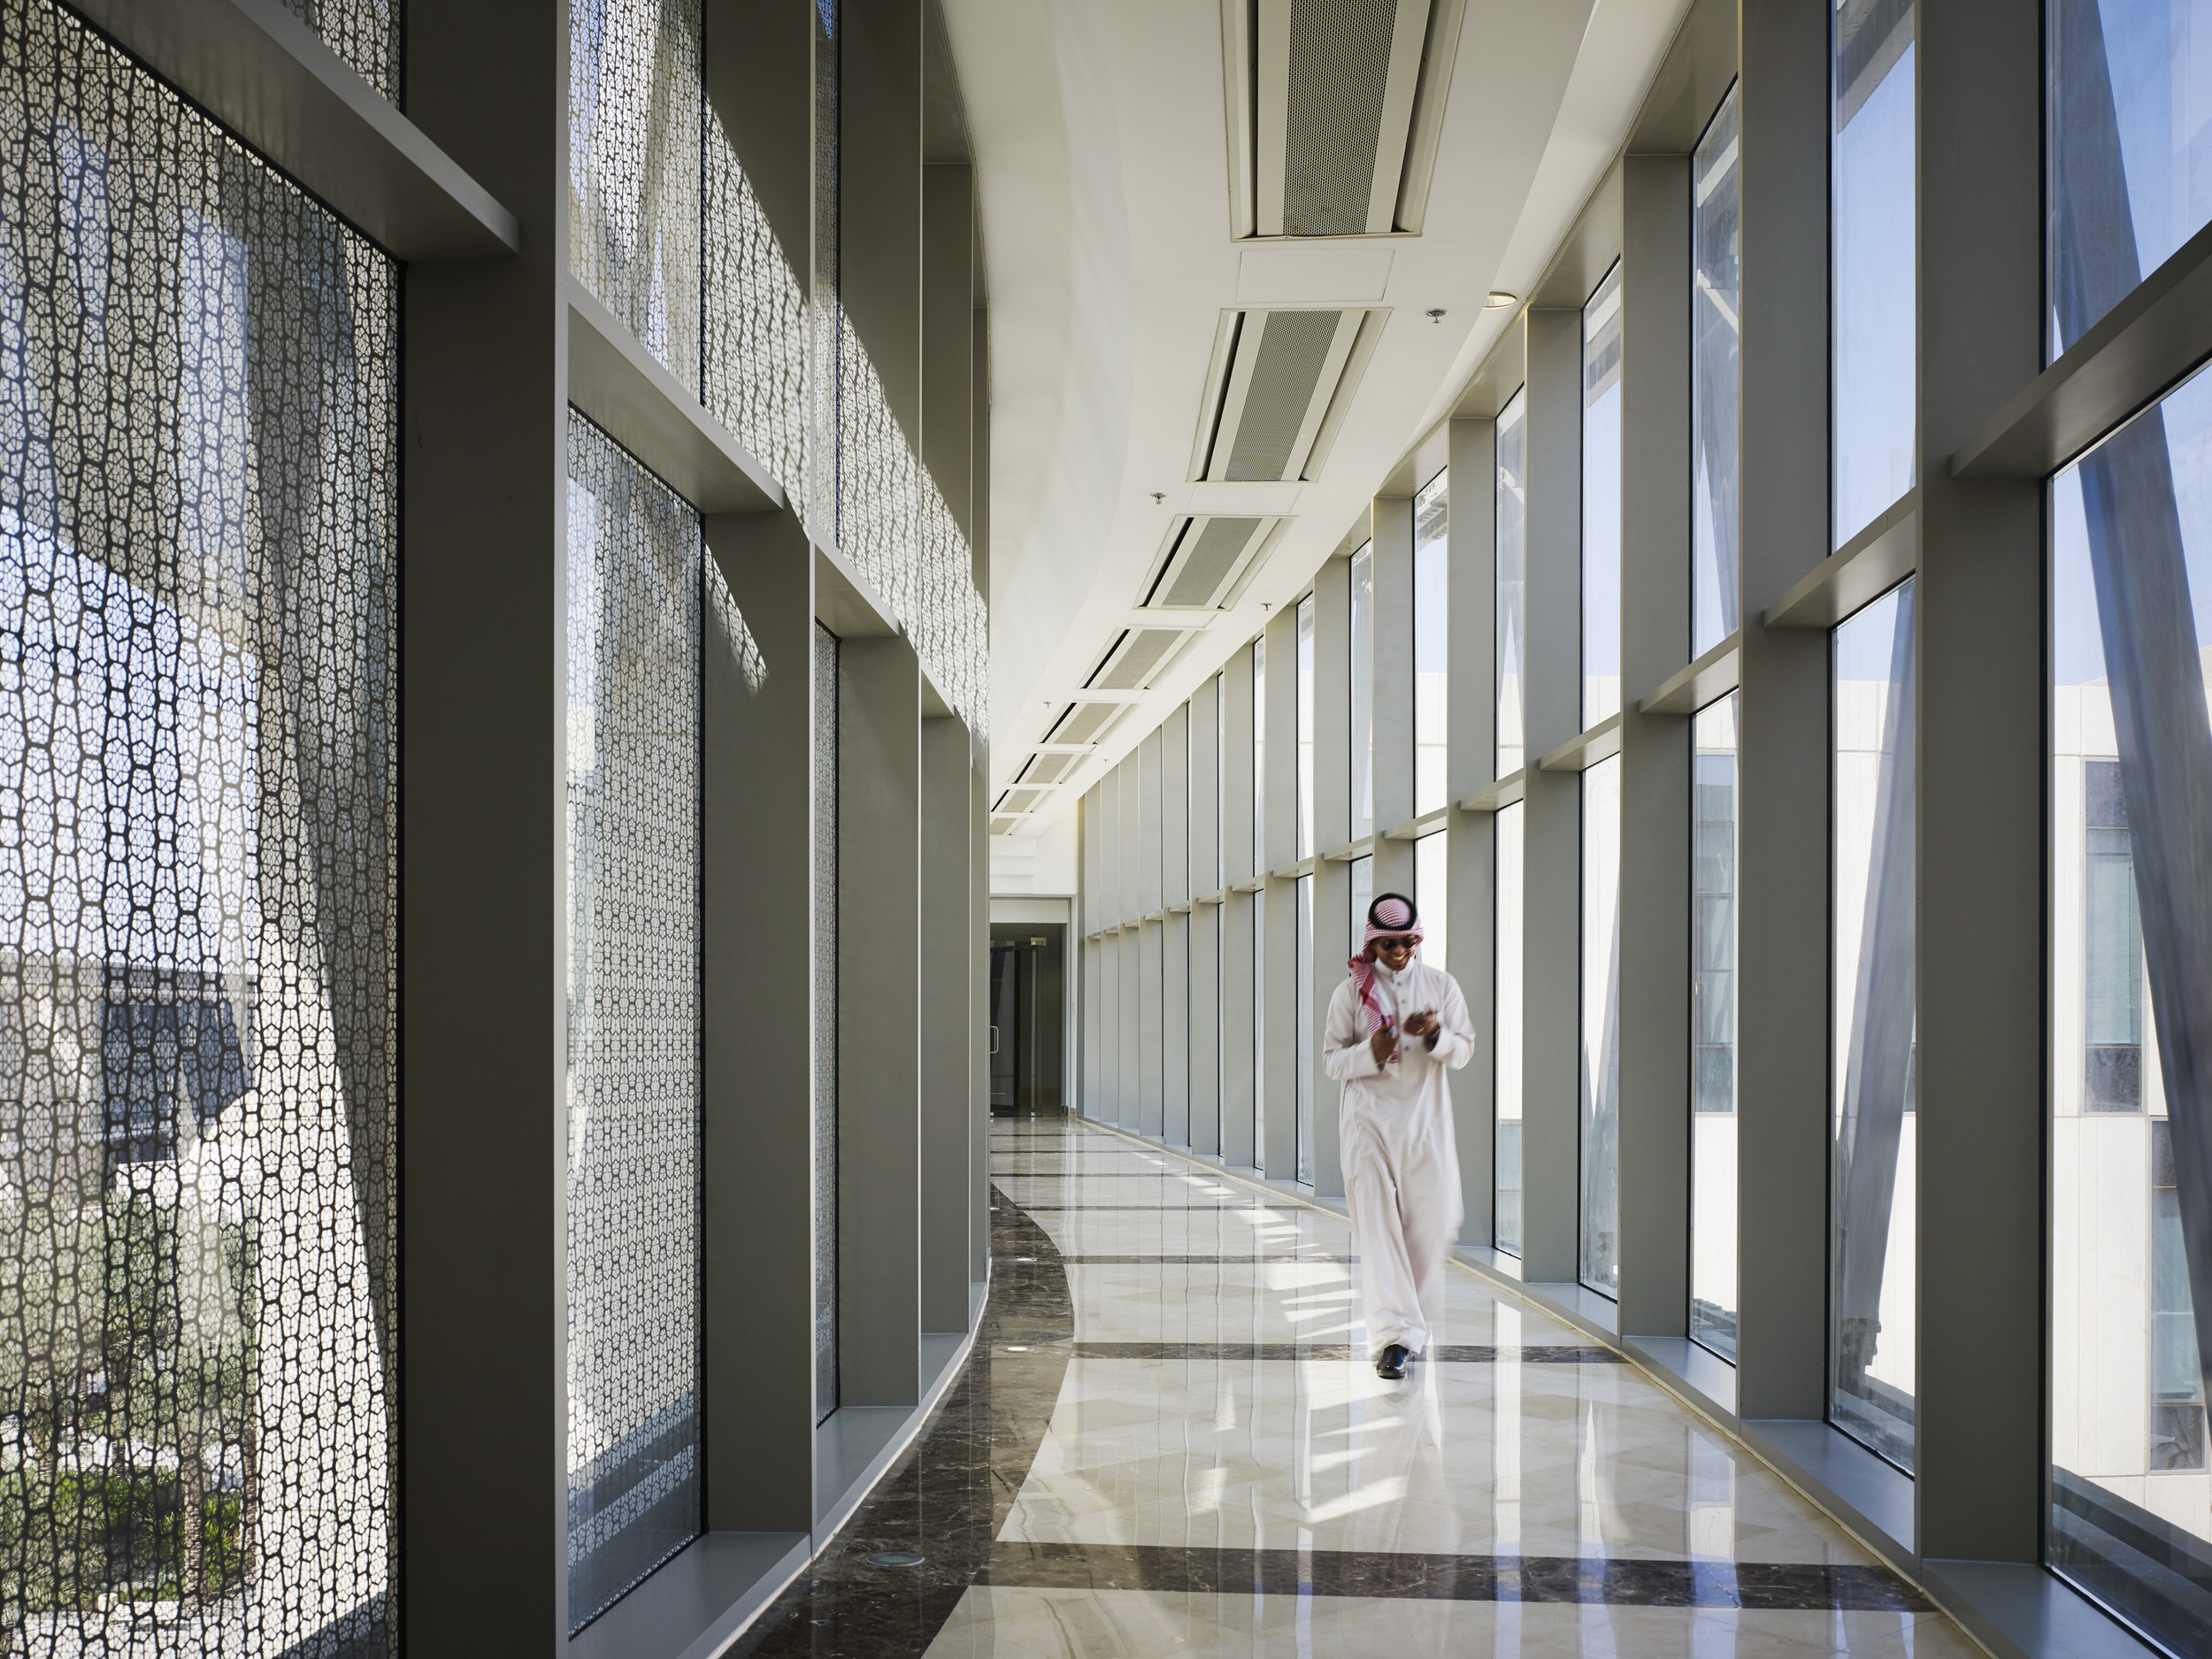 KSAU Jeddah Campus  Perkins+Will with Dar Al Handasah (Shair and Partners)  Jeddah, Saudi Arabia      Return to Projects